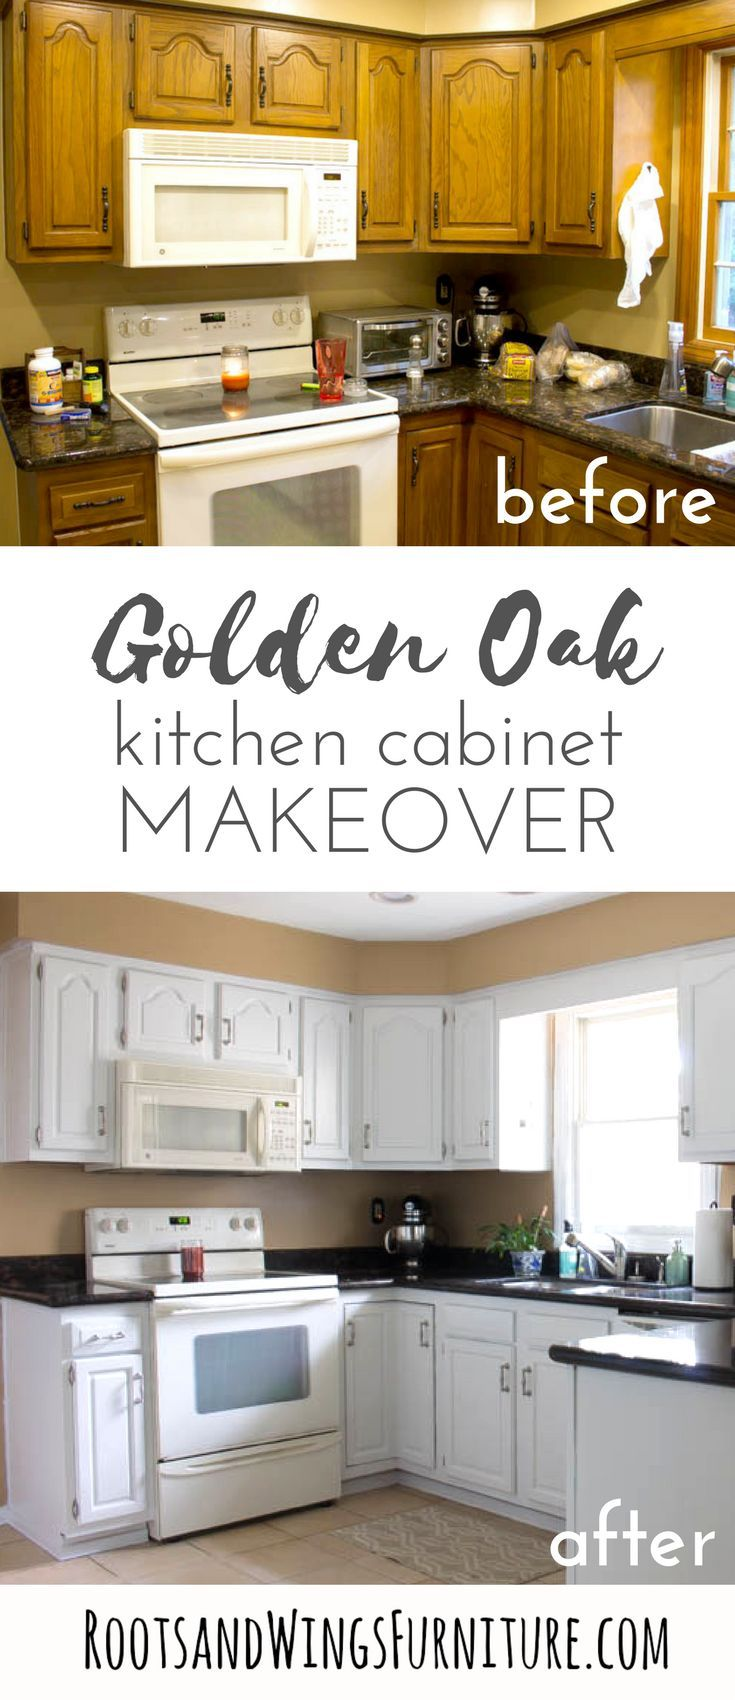 Oak kitchen cabinet makeover using alkyd paint stainless steel makeover your kitchen with this painted kitchen cabinet tutorial use the best primer and alkyd solutioingenieria Gallery